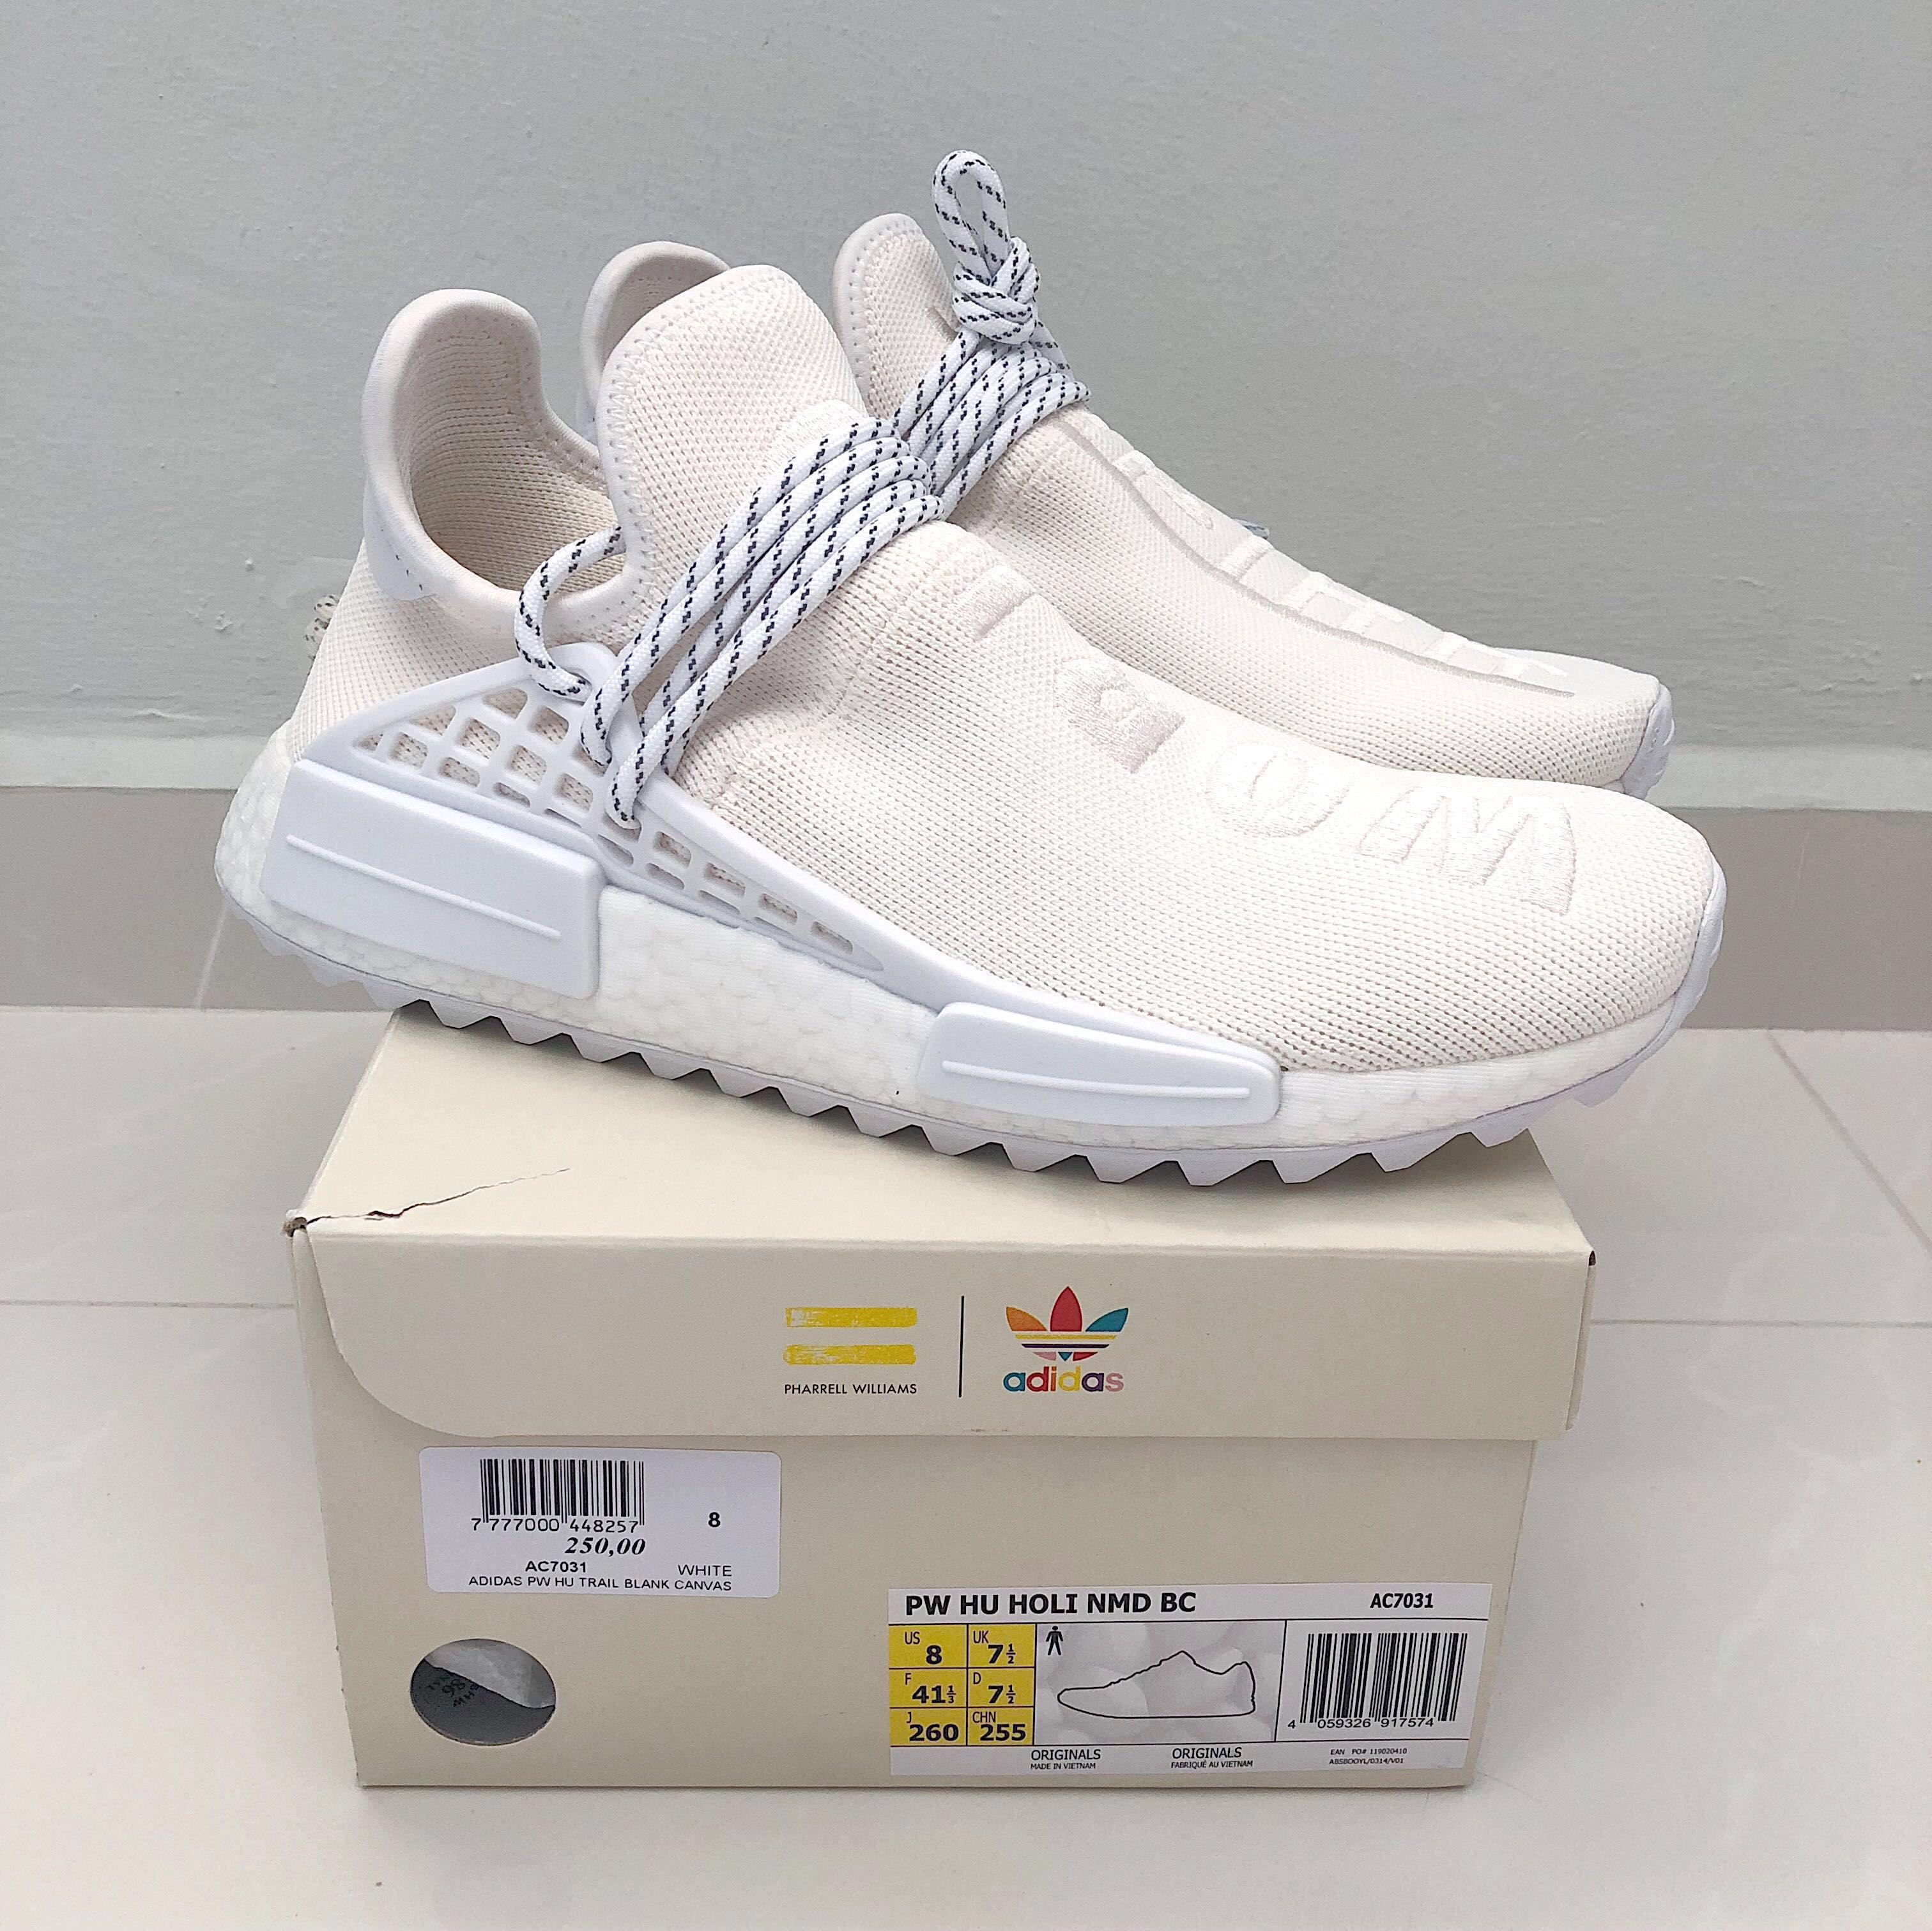 e74d62351 Pharrell Williams x Adidas NMD Hu Holi  Blank Canvas